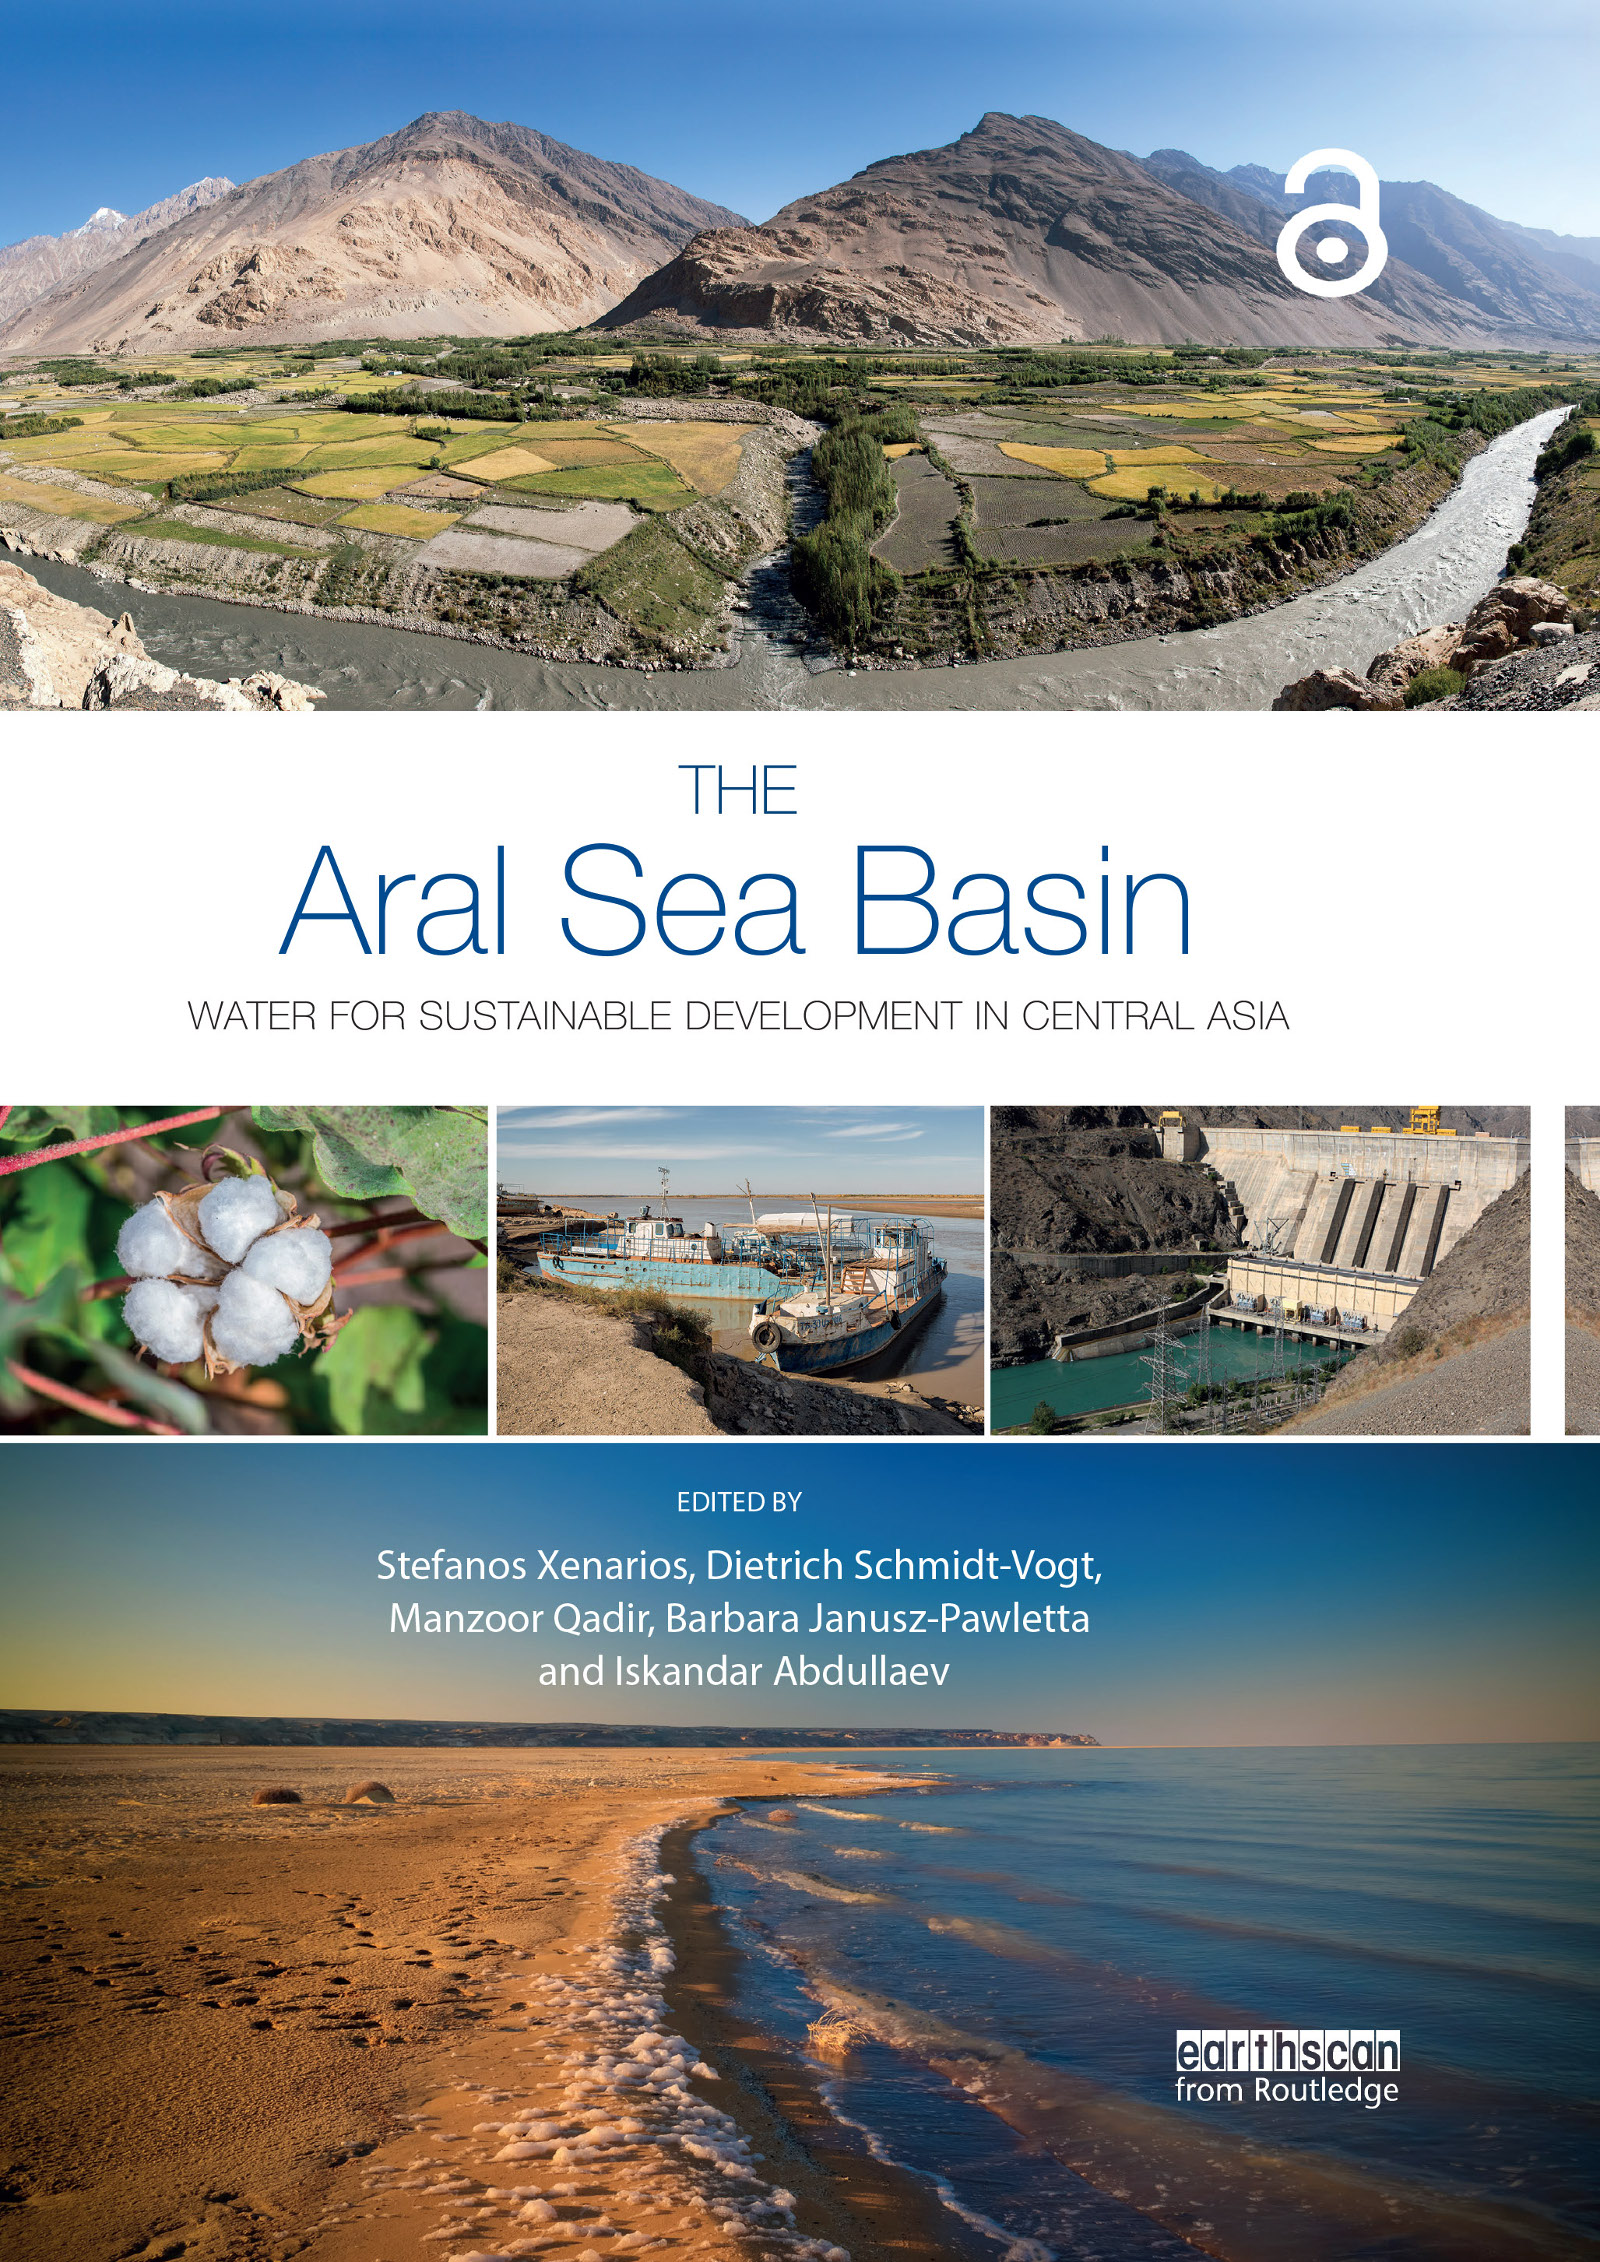 The Aral Sea Basin: Water for Sustainable Development in Central Asia book cover